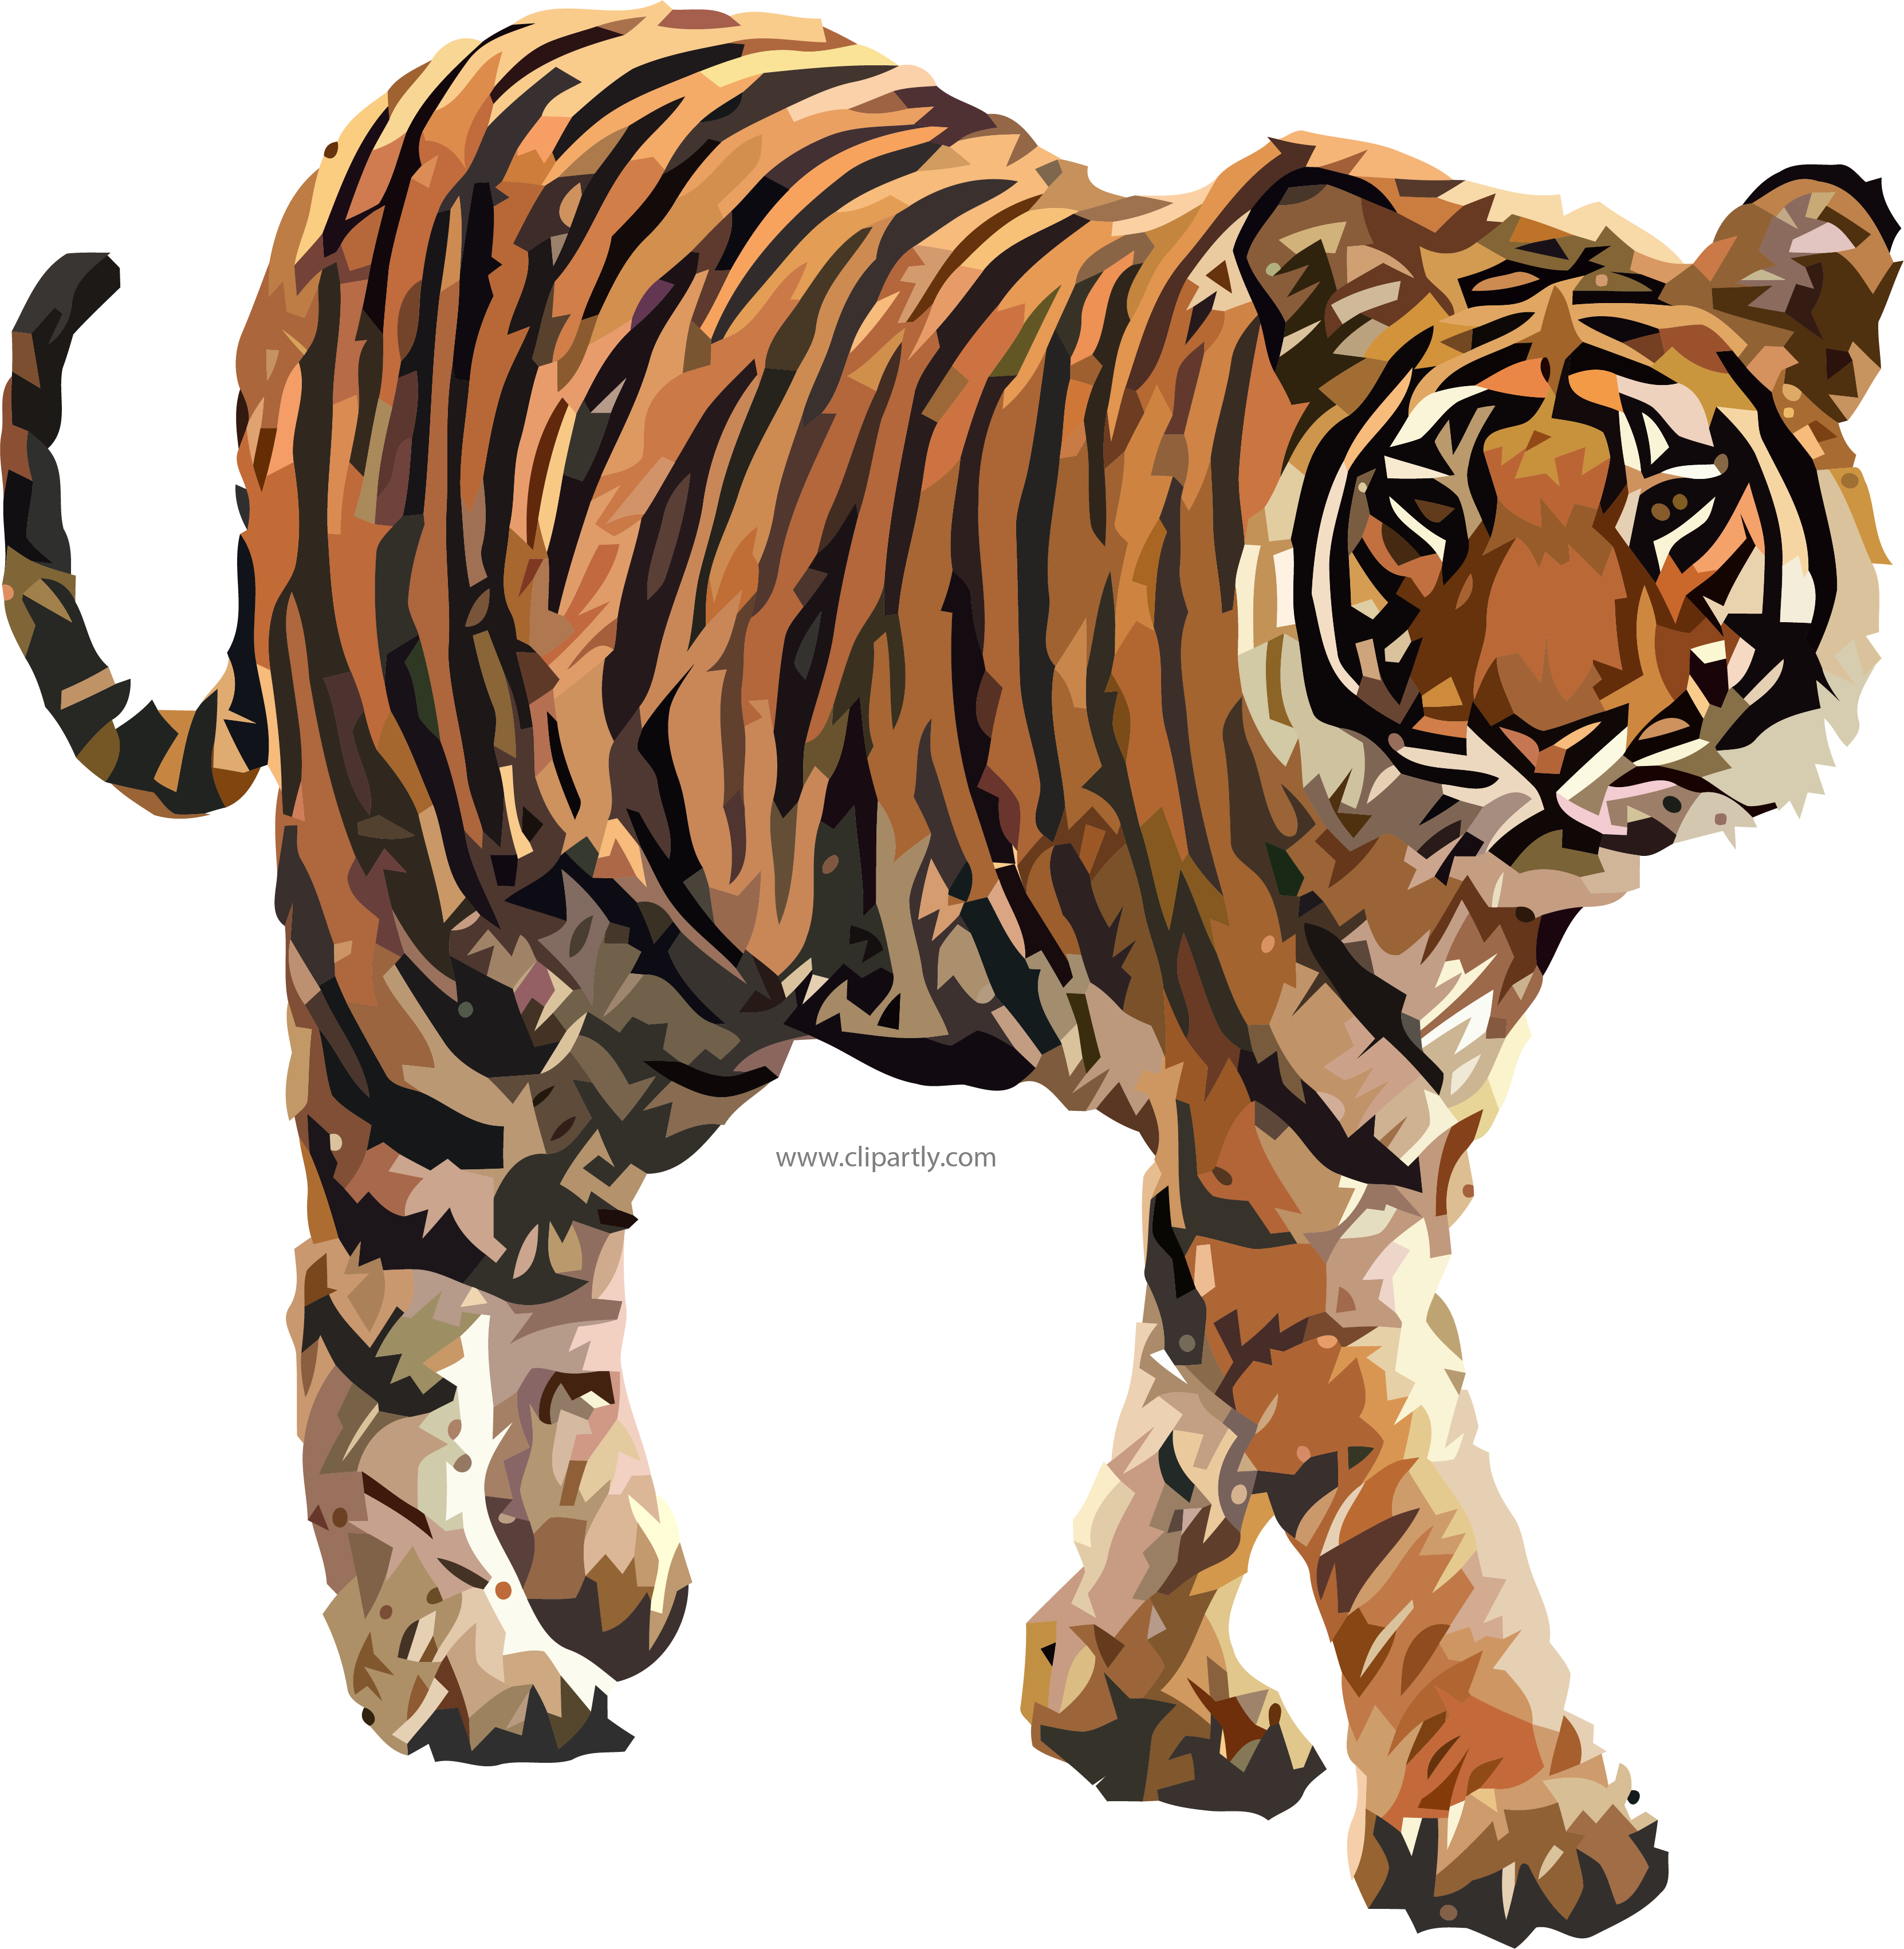 Tiger clipart png. Come image www clipartly